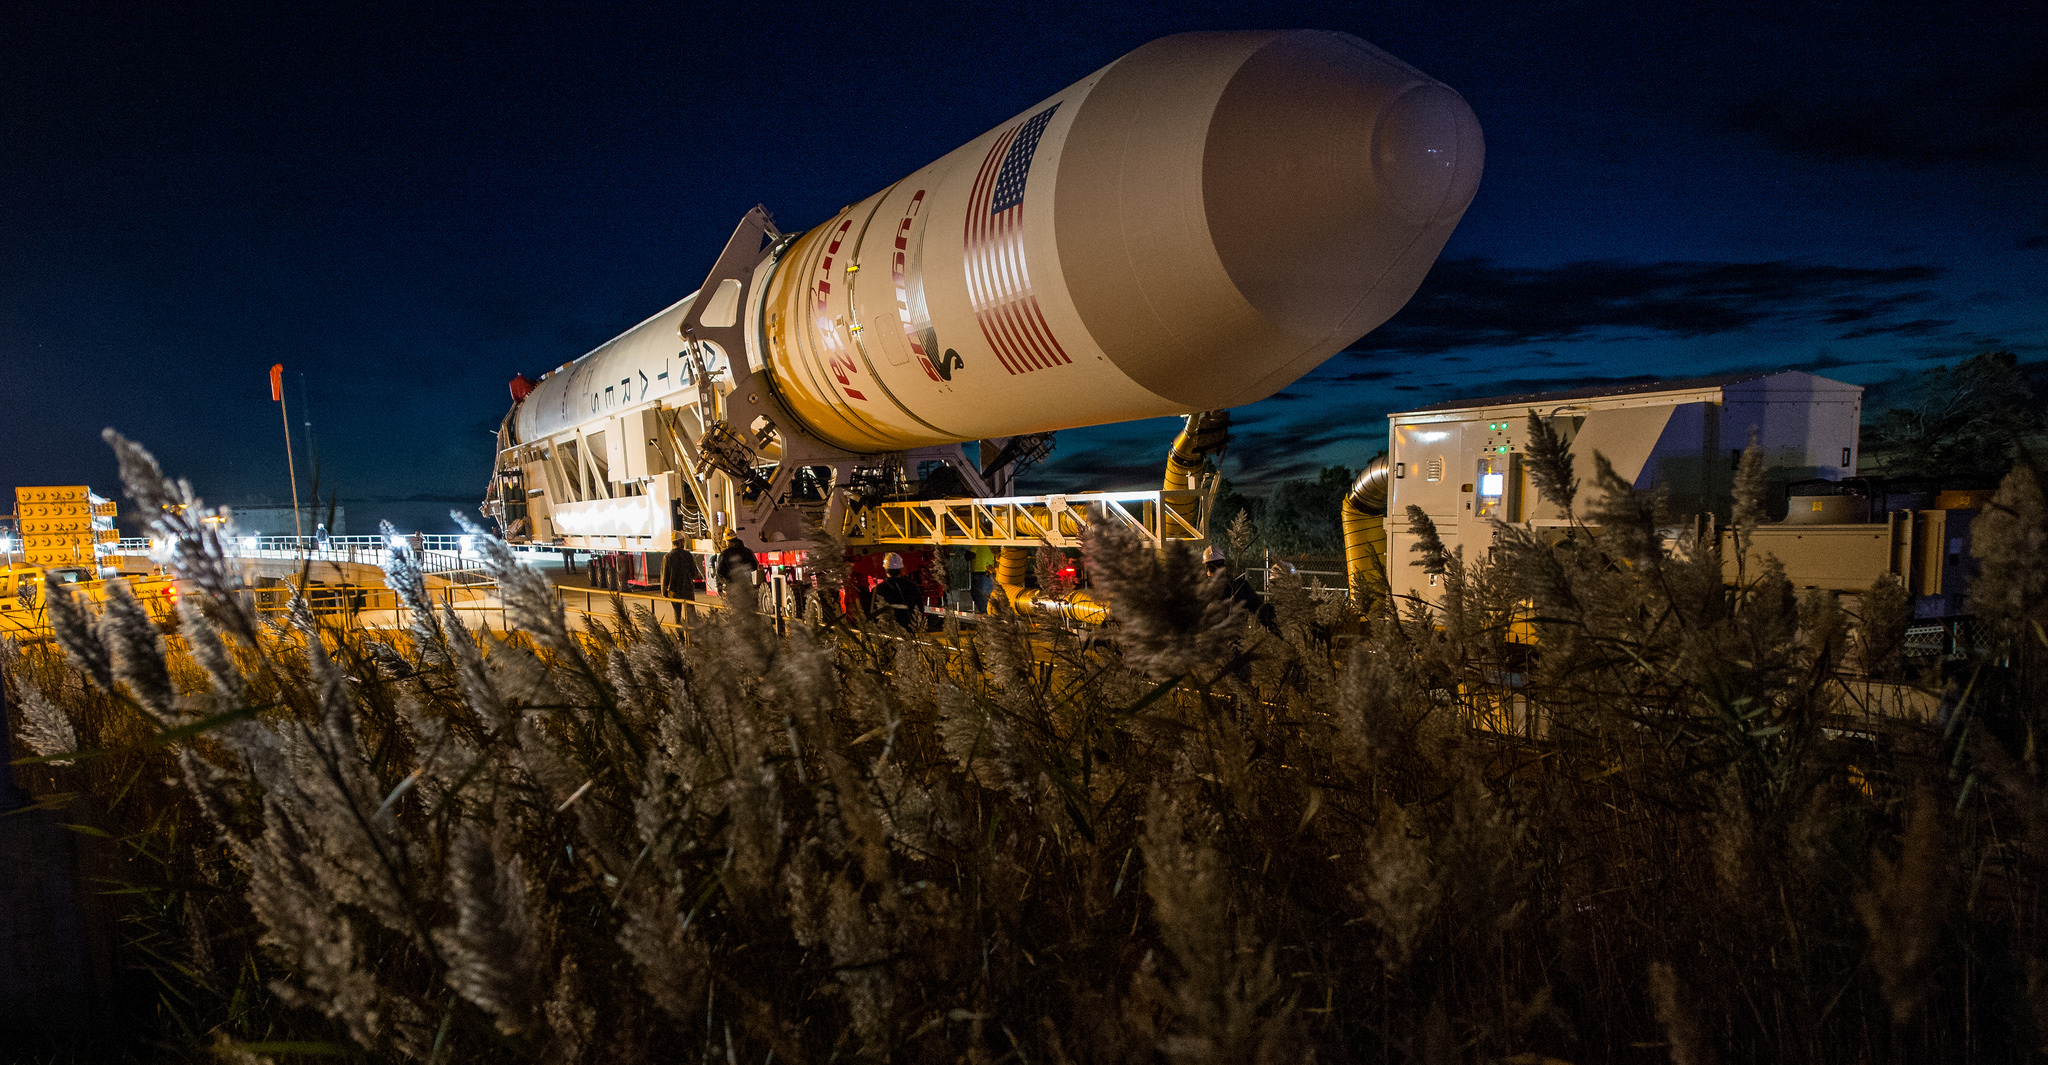 The Orb-3 rocket, now set to launch Oct. 28. (Photo: NASA)